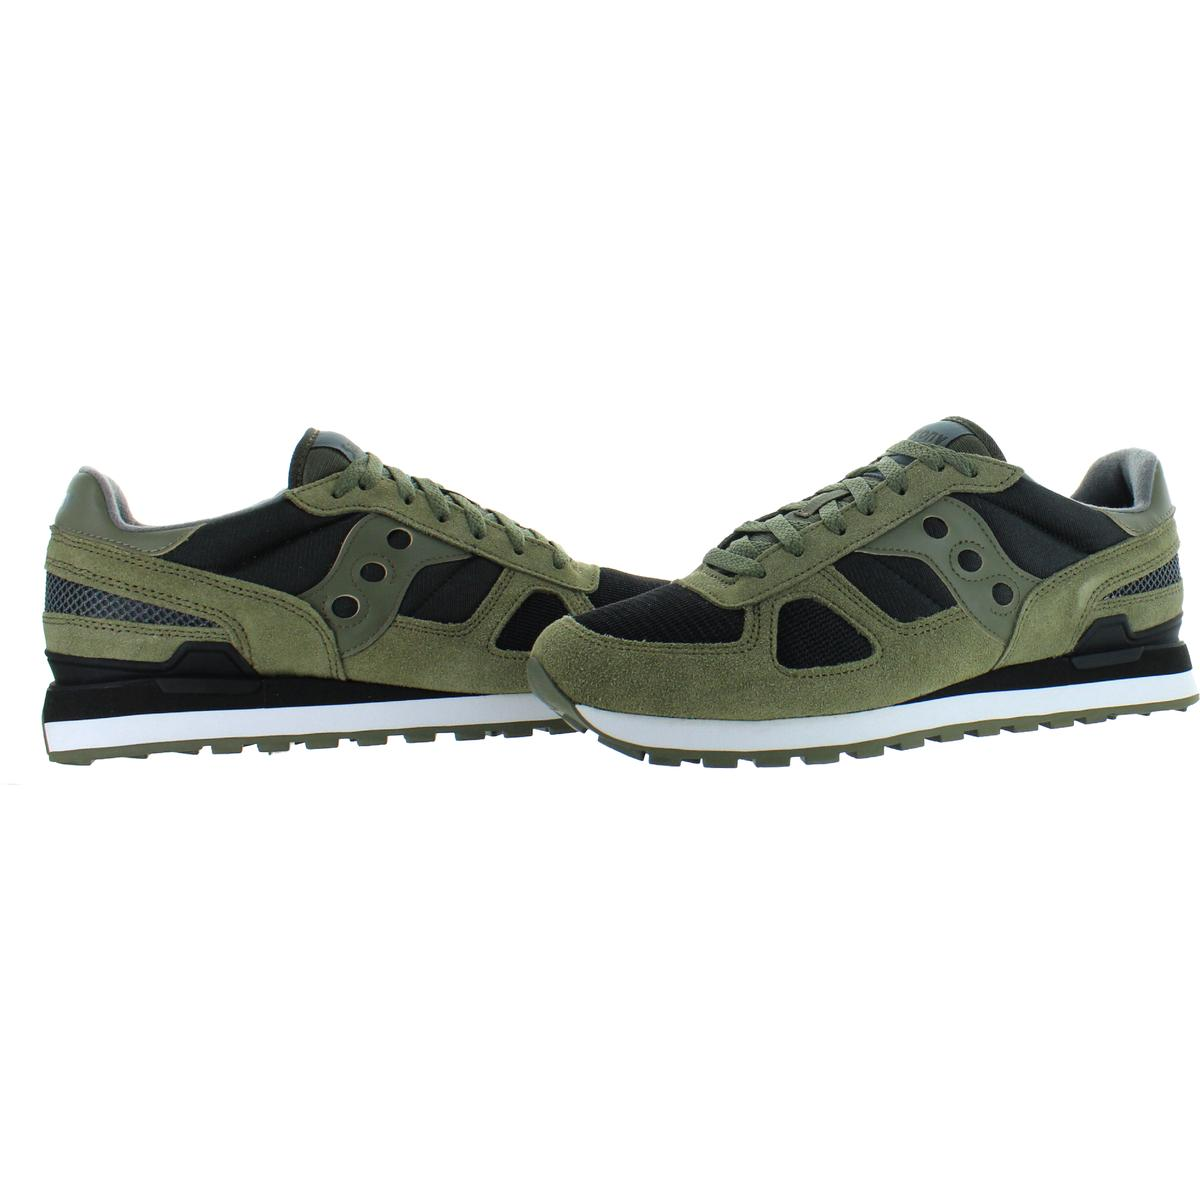 Saucony-Mens-Shadow-Original-Trainers-Suede-Comfort-Sneakers-Shoes-BHFO-0431 miniatuur 27